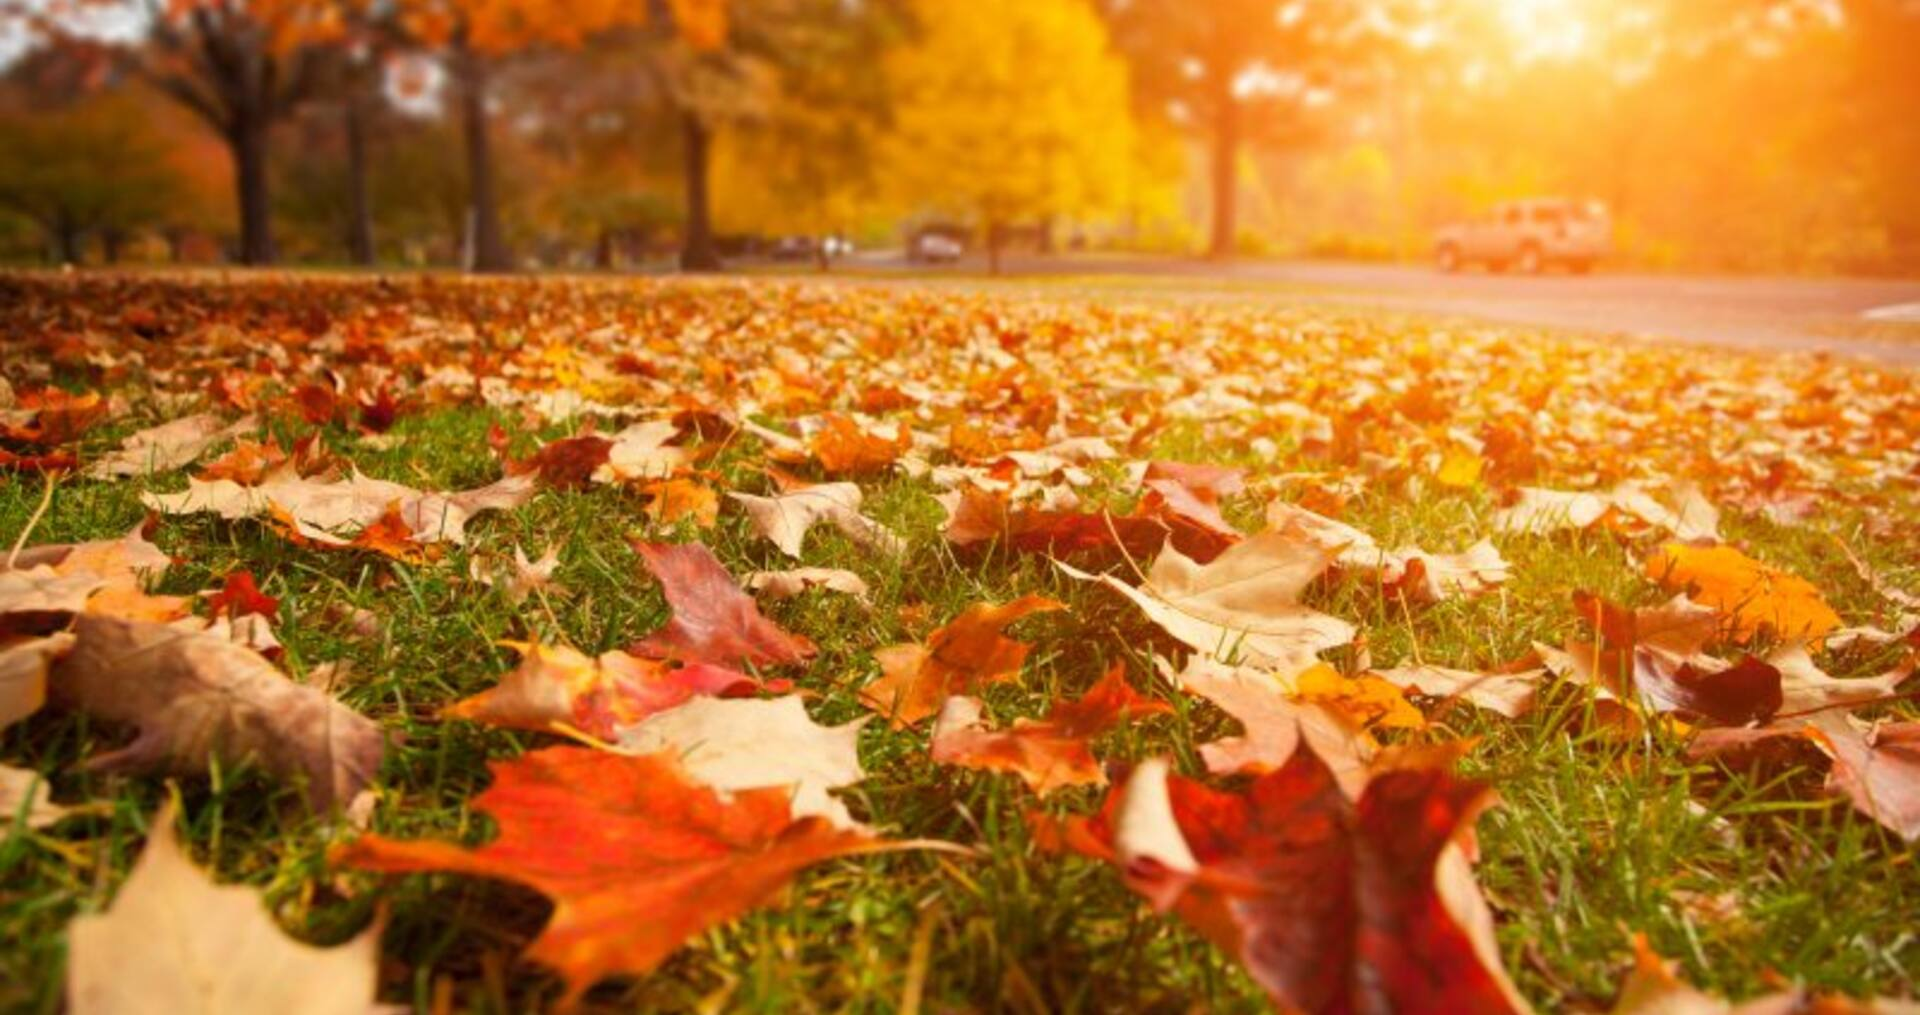 Six things to do around your home this Autumn to prepare for the cooler months